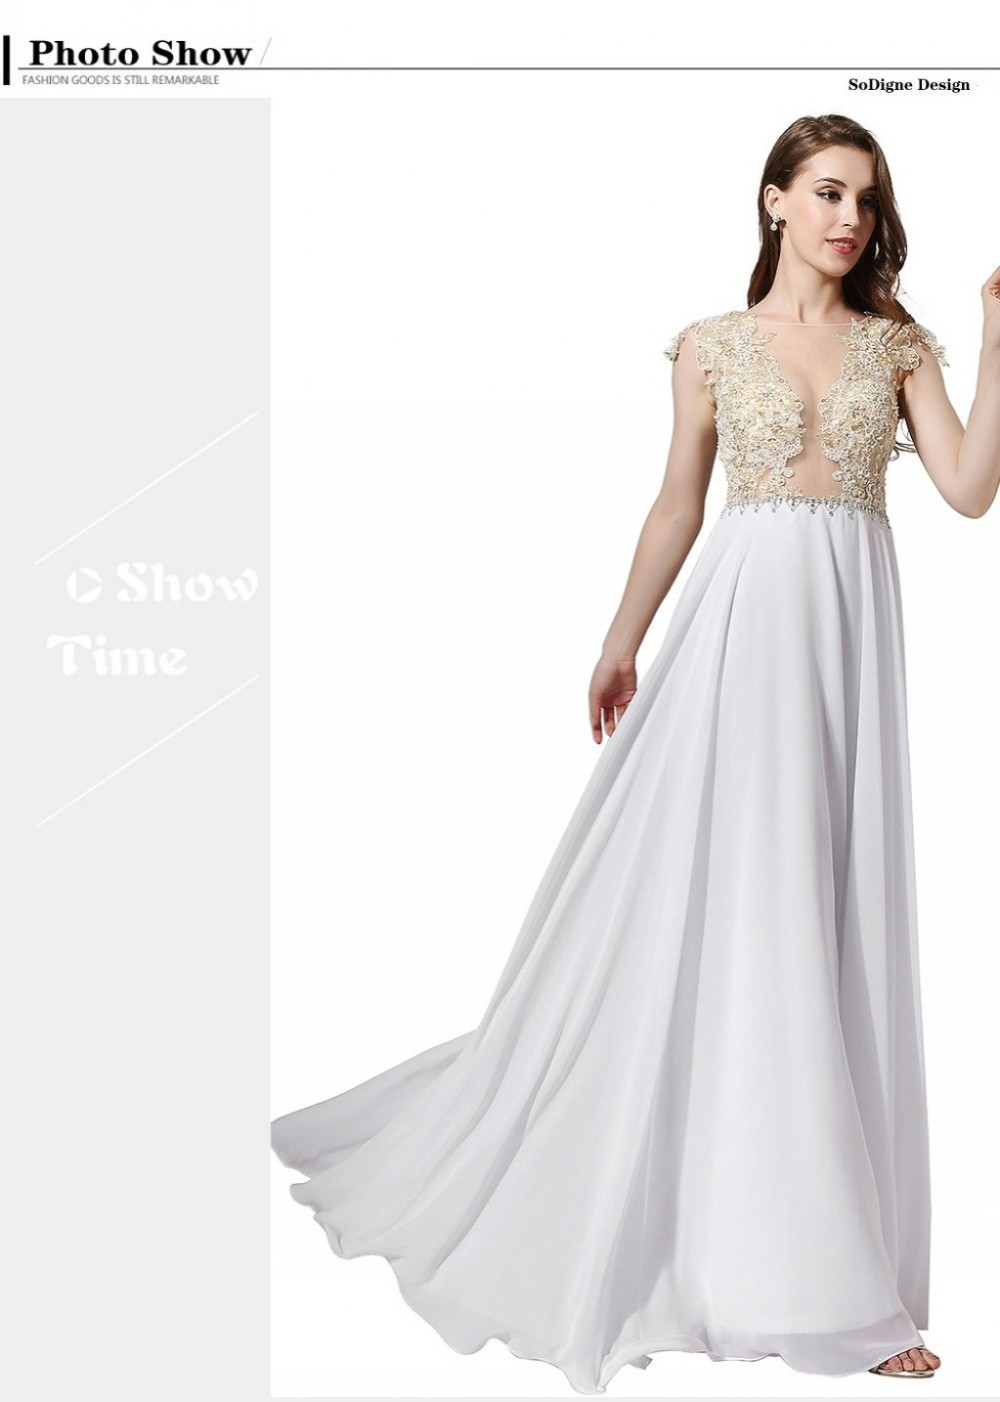 014a4ed7219 ... Mermaid Top Sheer Embroidery Long Party Pageant DressUSD  111.40-118.00 piece. a. 11 conew 5 (1) conew conew 11 (2) ...